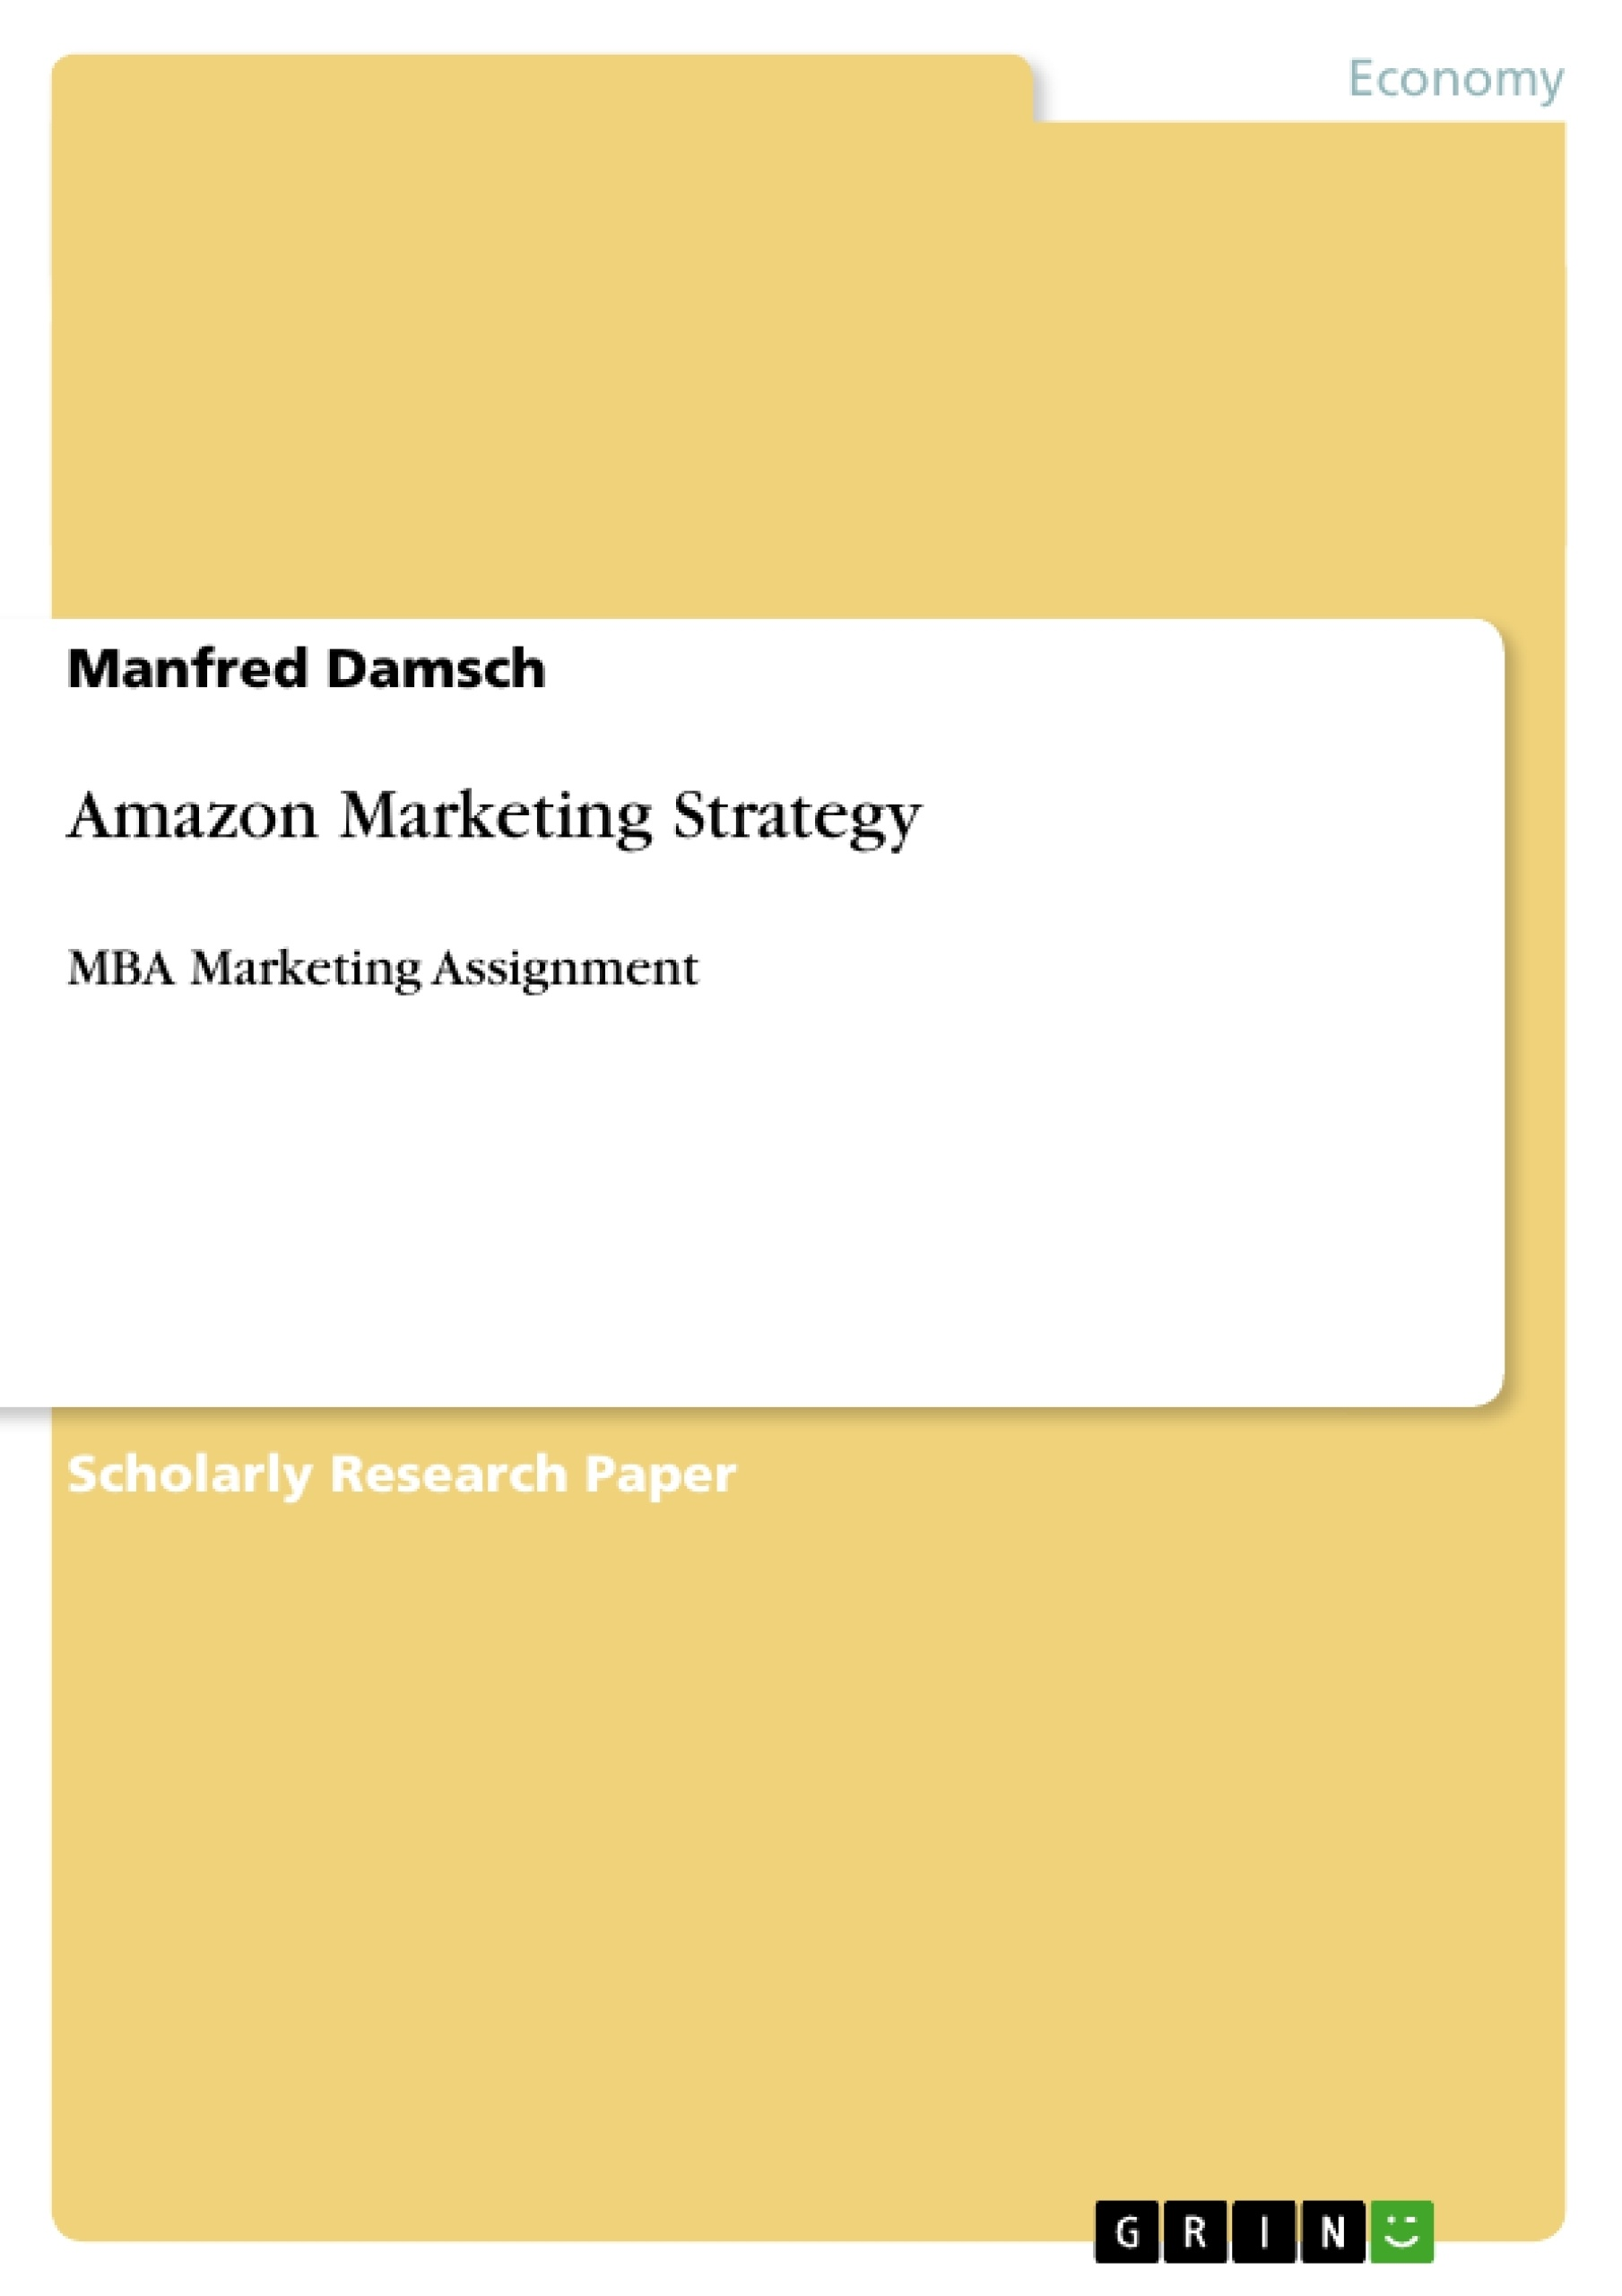 amazon marketing strategy publish your master s thesis amazon marketing strategy publish your master s thesis bachelor s thesis essay or term paper